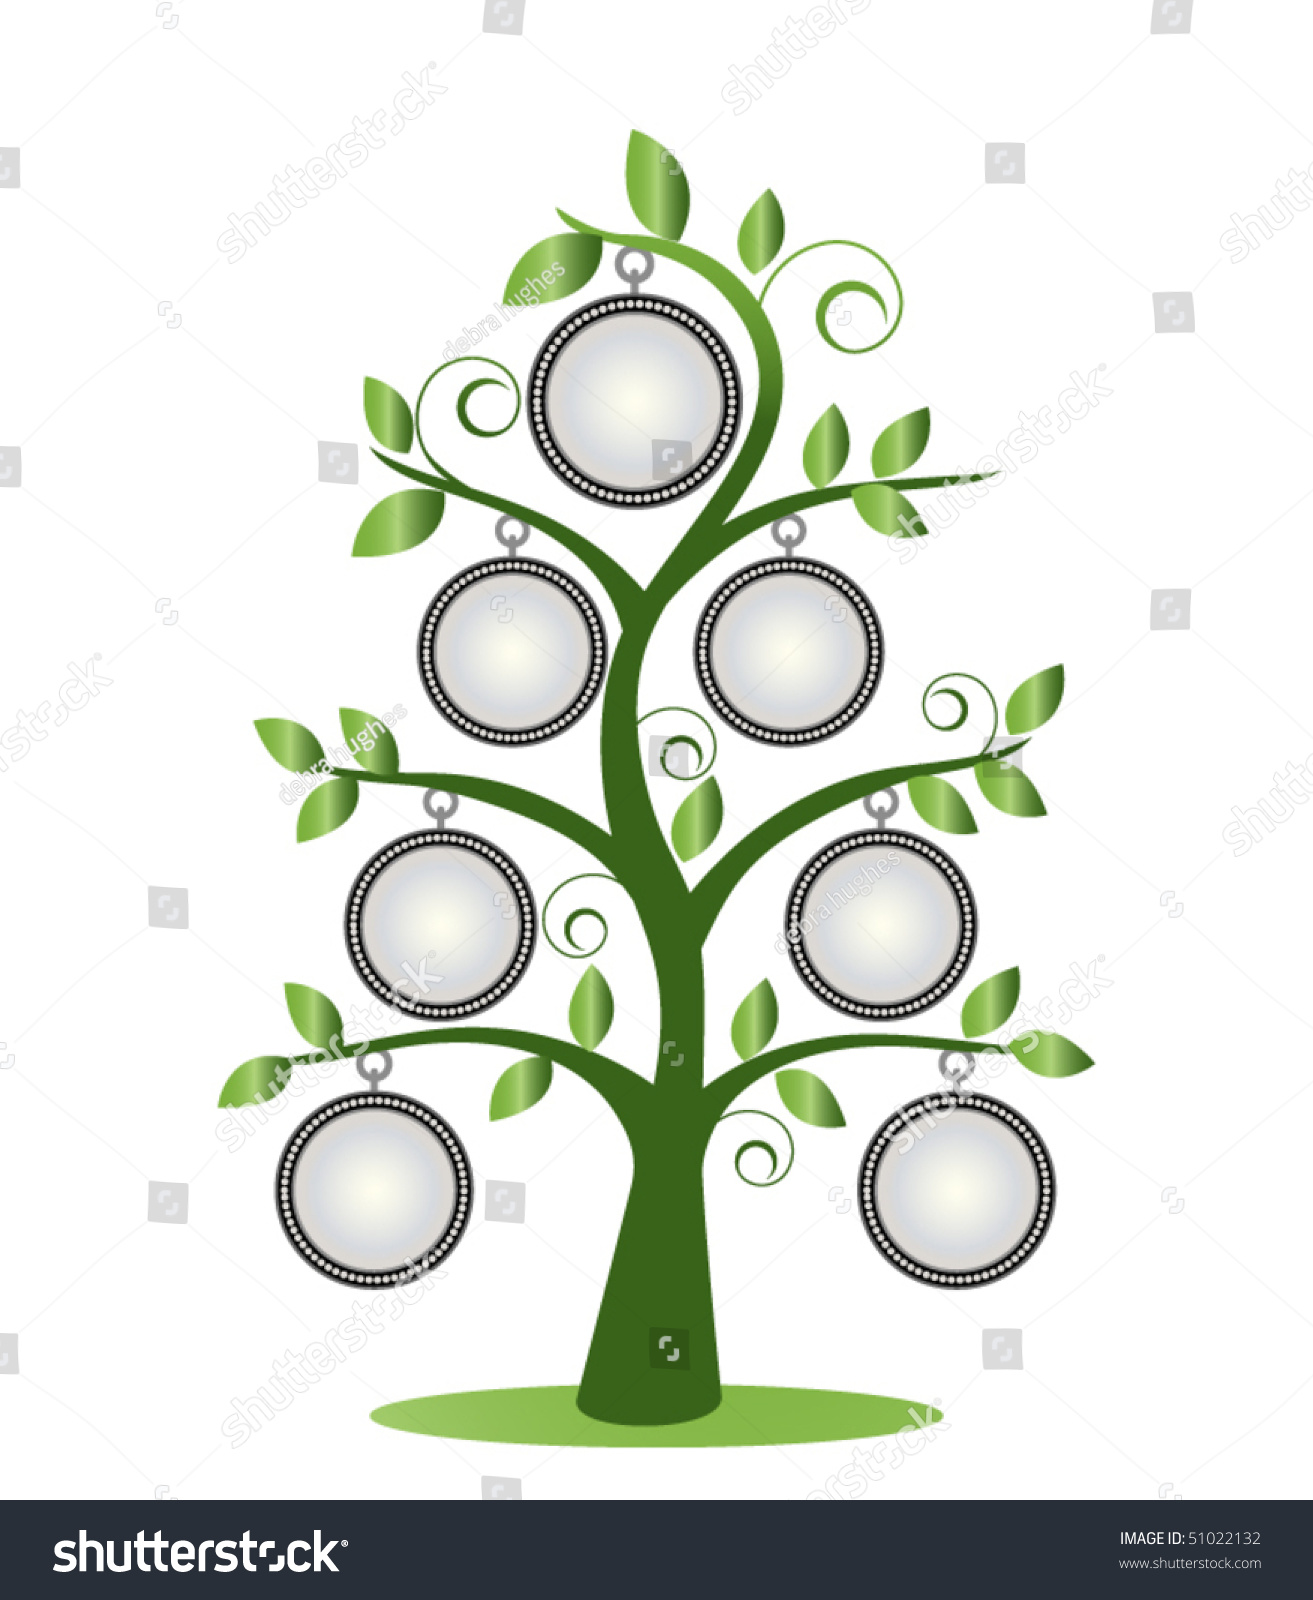 Family Tree Frames Empty Your Input Stock Vector (Royalty Free ...